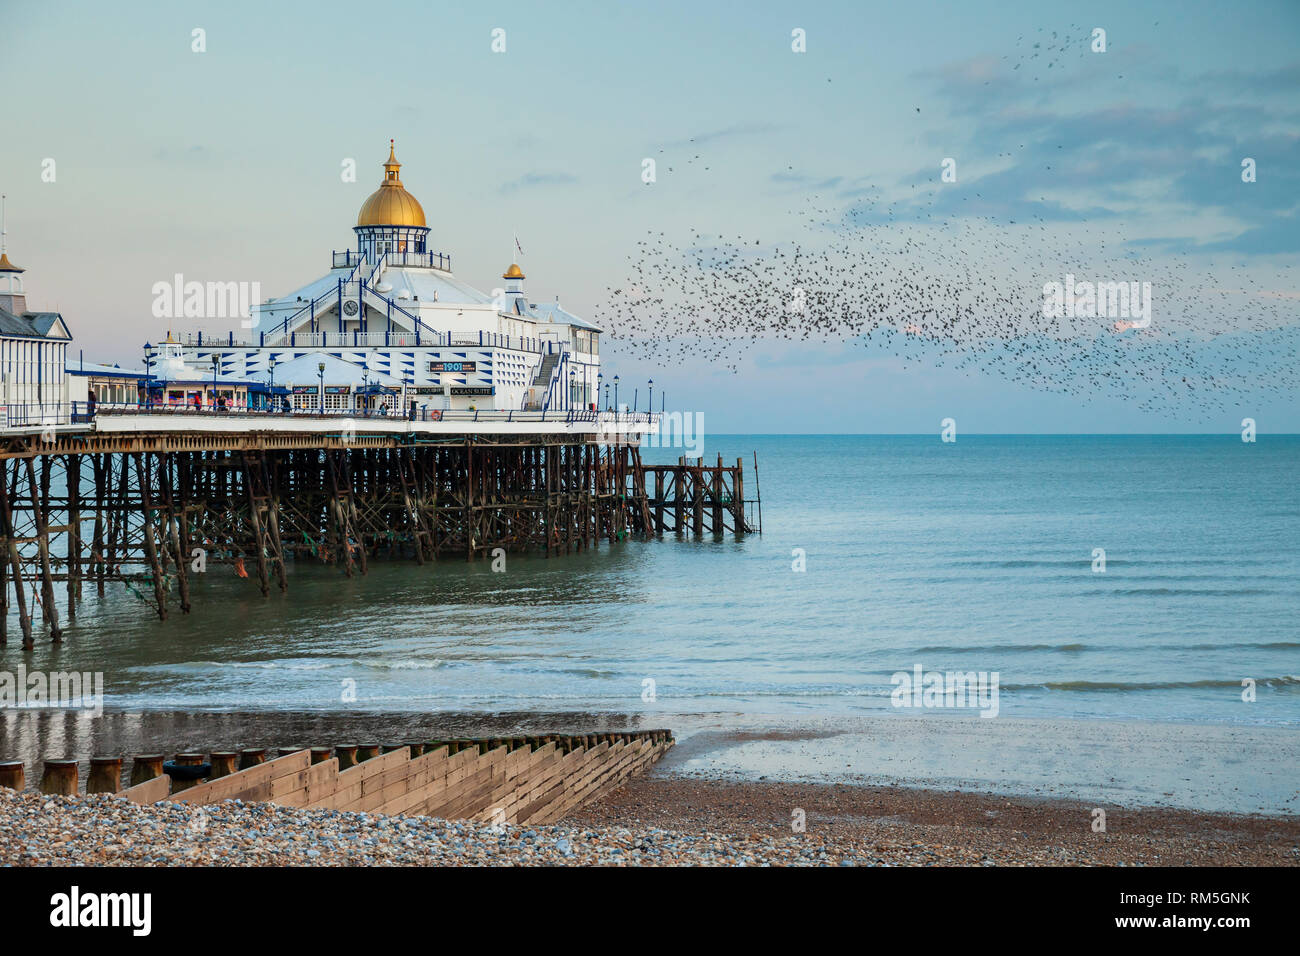 Evening at Eastbourne Pier in East Sussex, England. Stock Photo